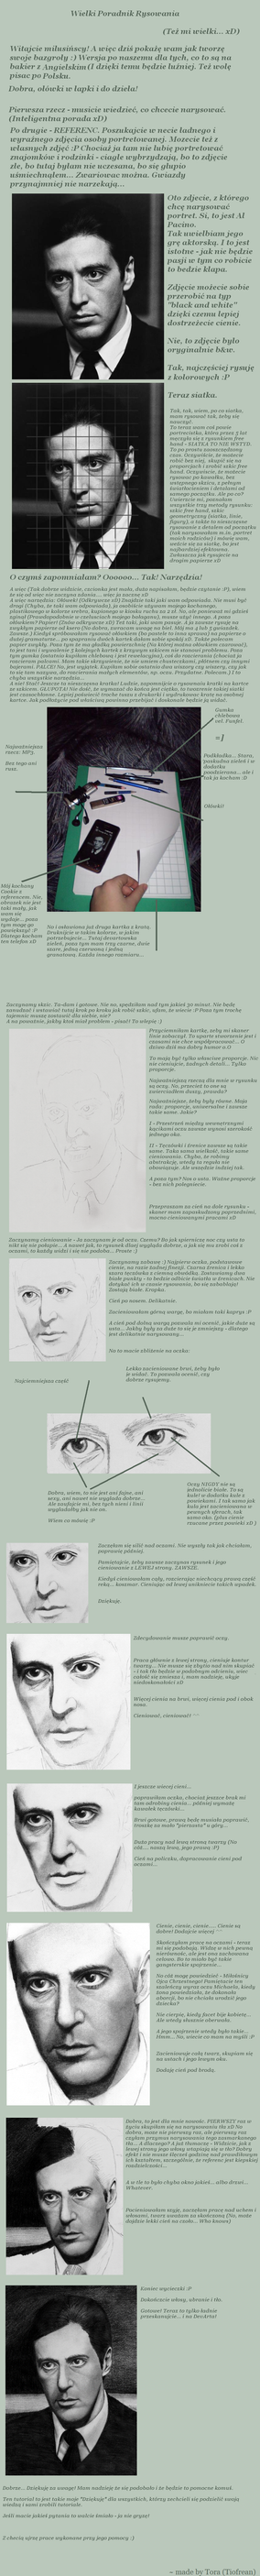 Drawing Tutorial PL by Tiofrean